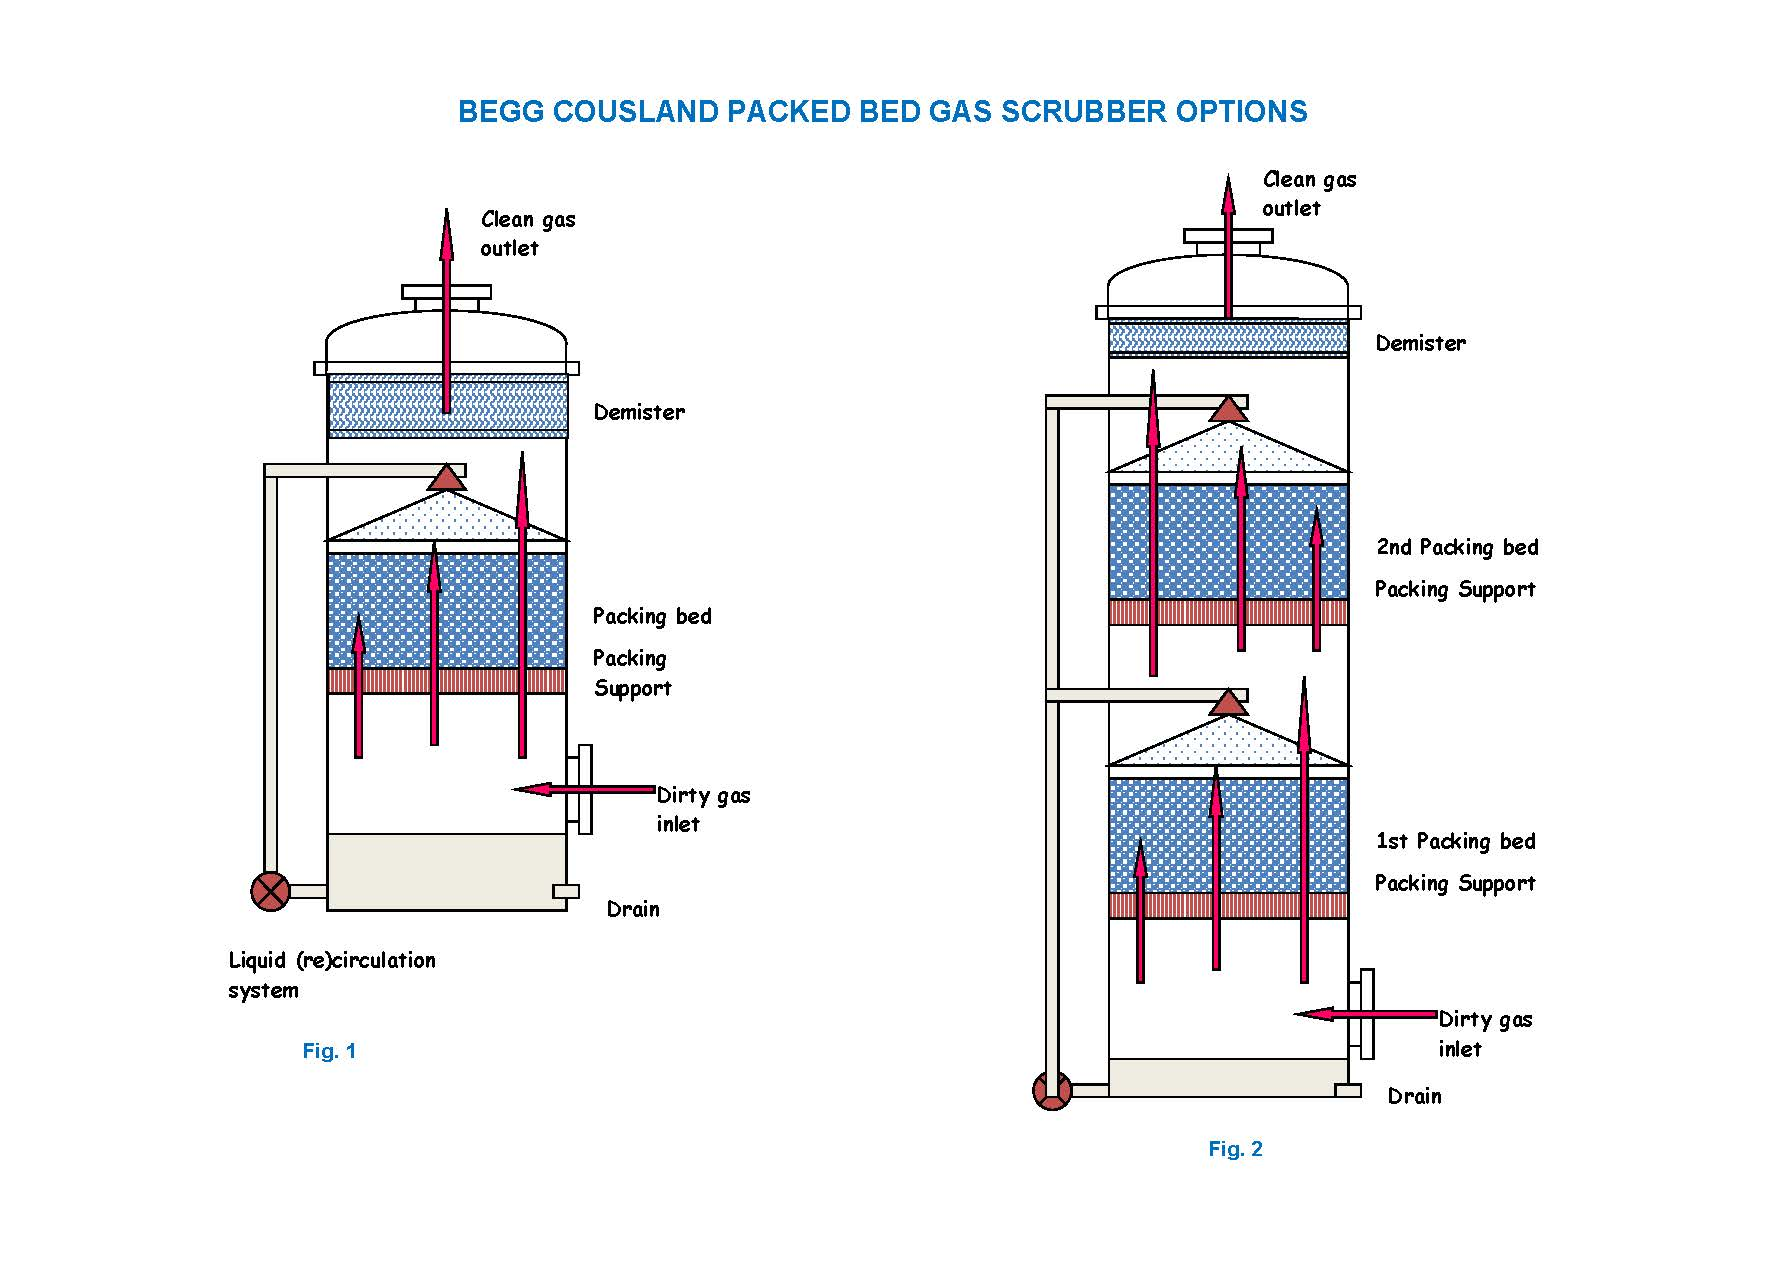 Scrubber Arrangement Options Begg Cousland